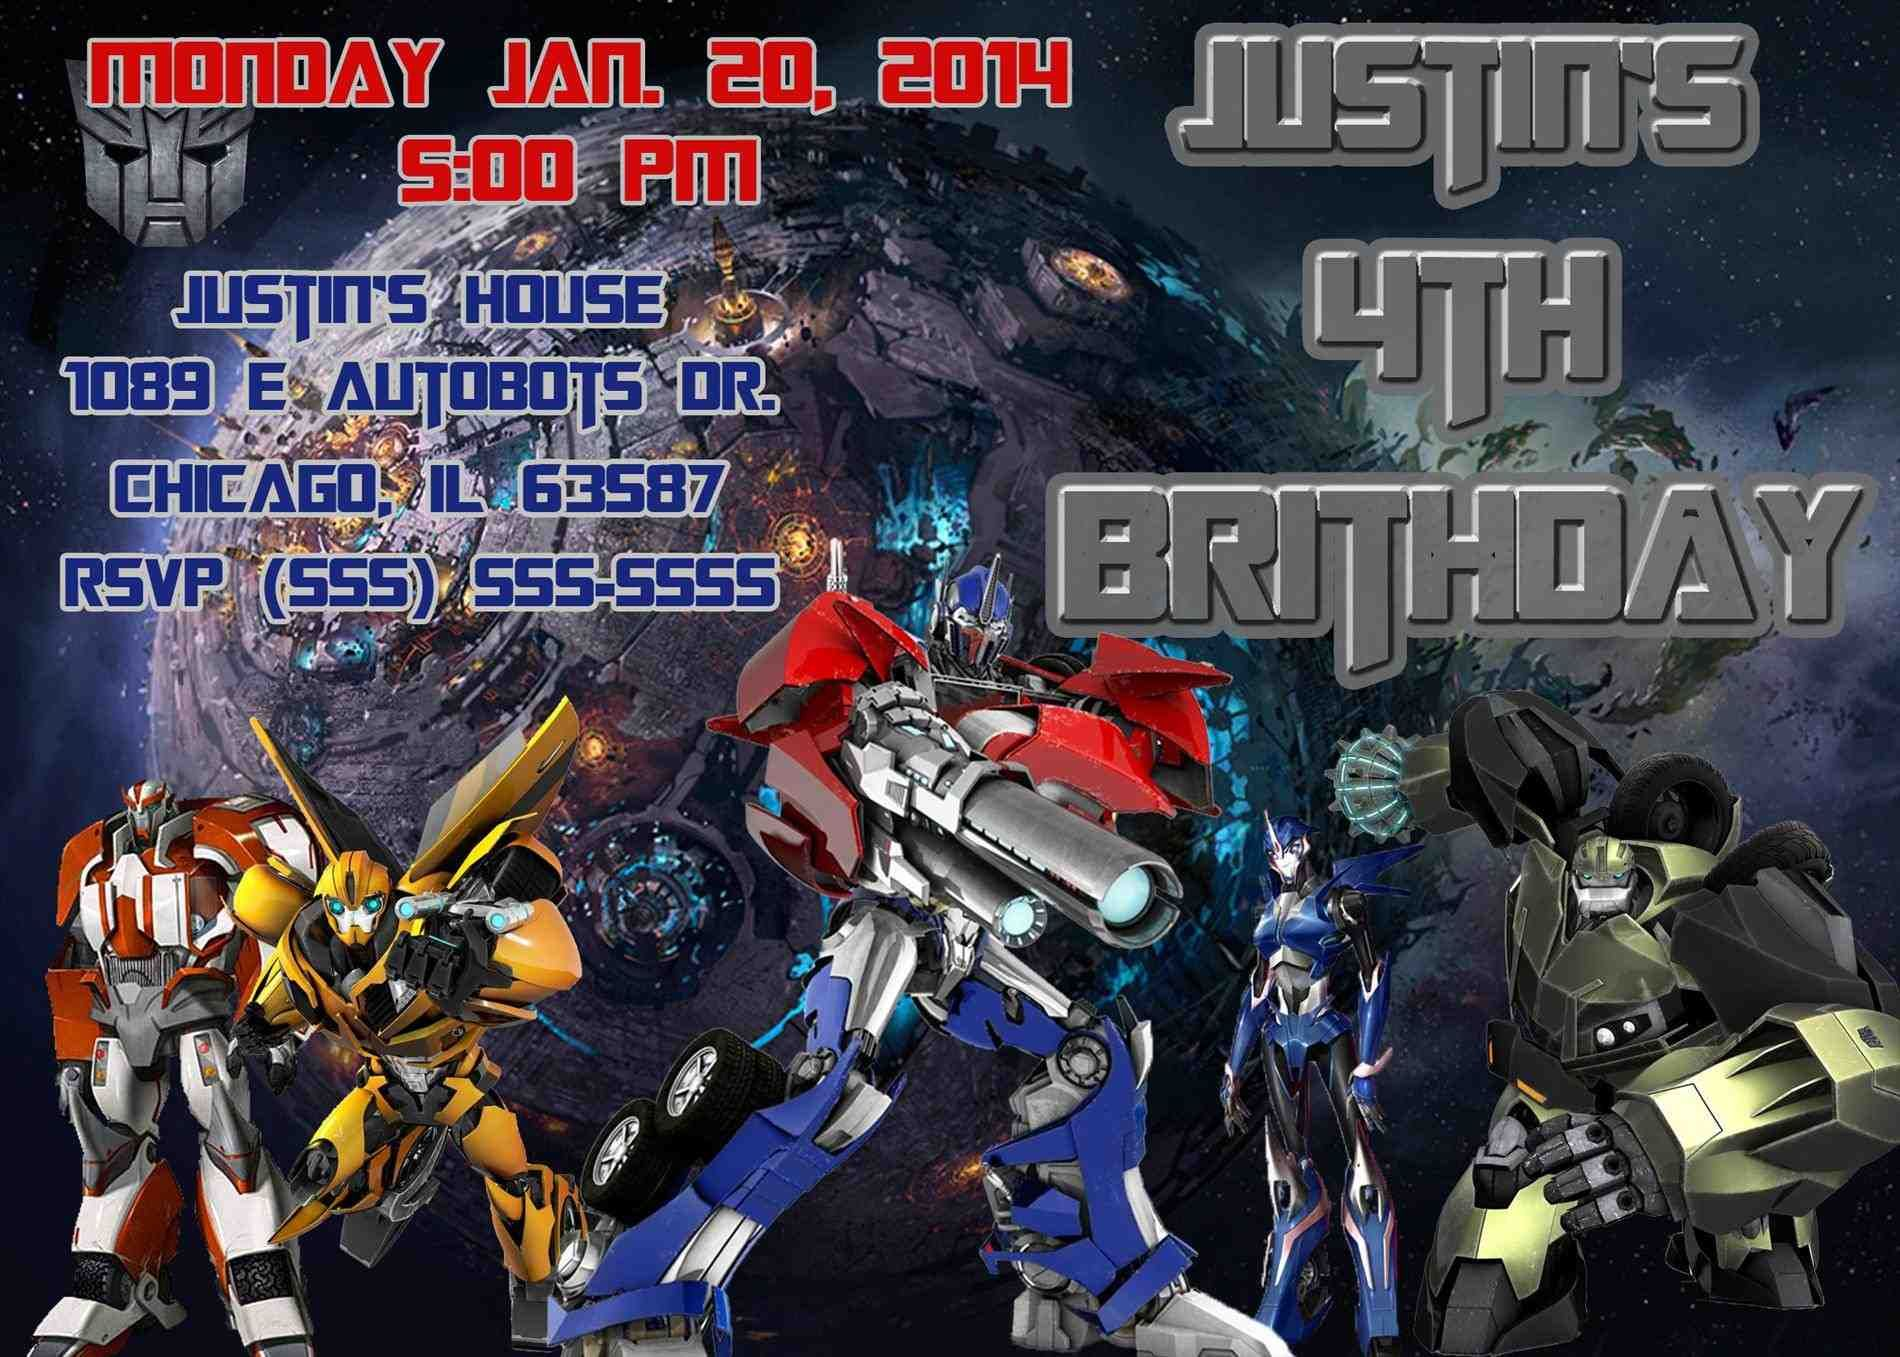 transformer invitation bumblebee invitation bumblebee birthday